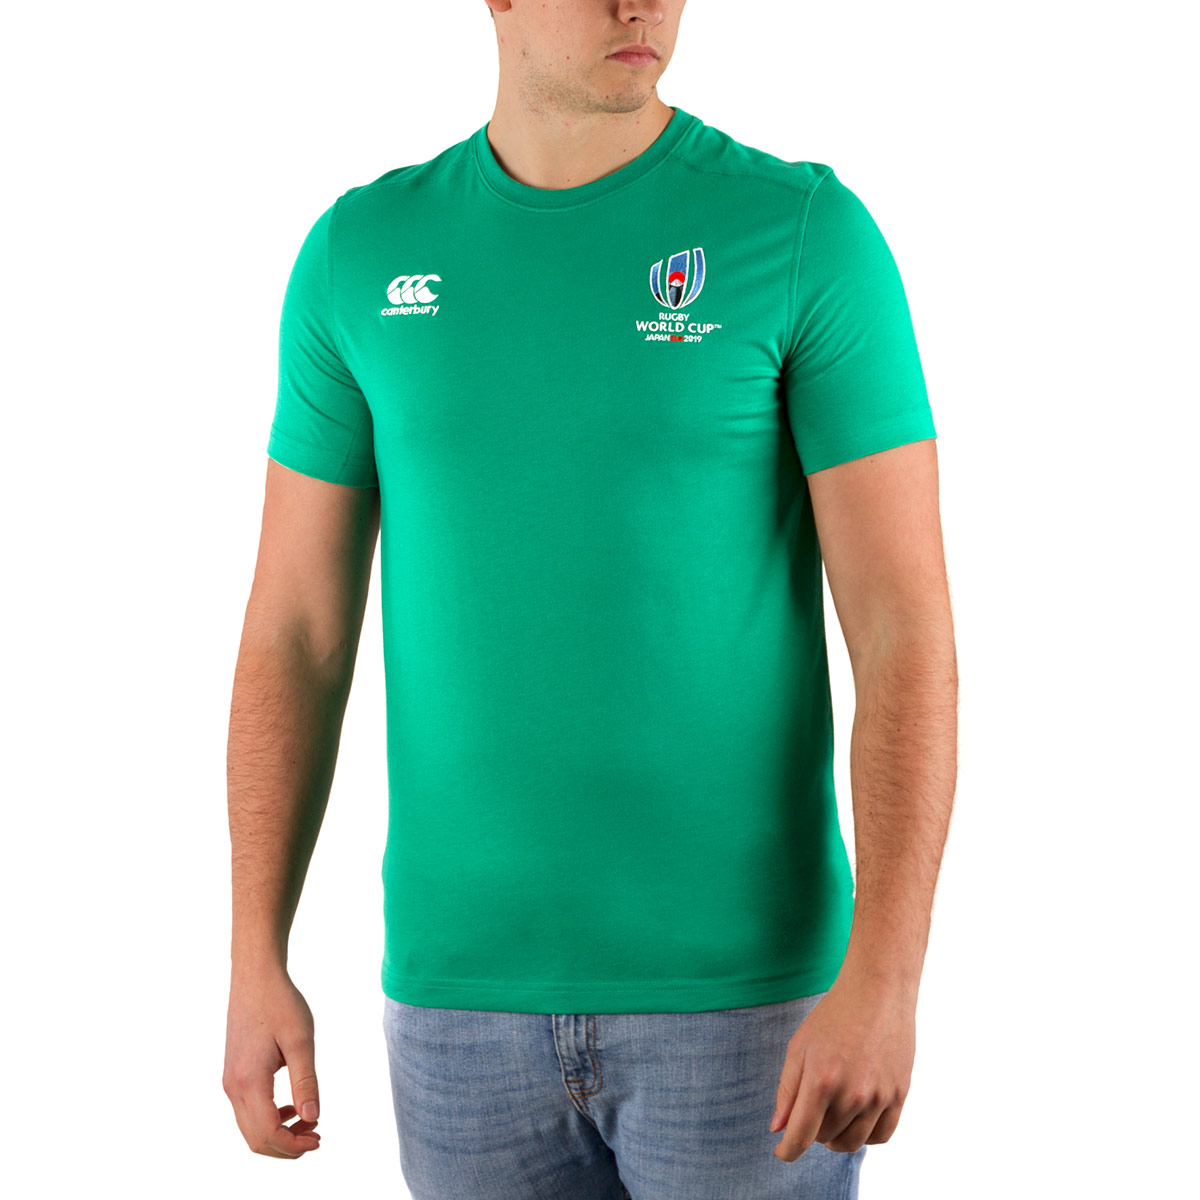 Green Canterbury Rugby World Cup 2019 Cotton Tee Shirt | rugbystore